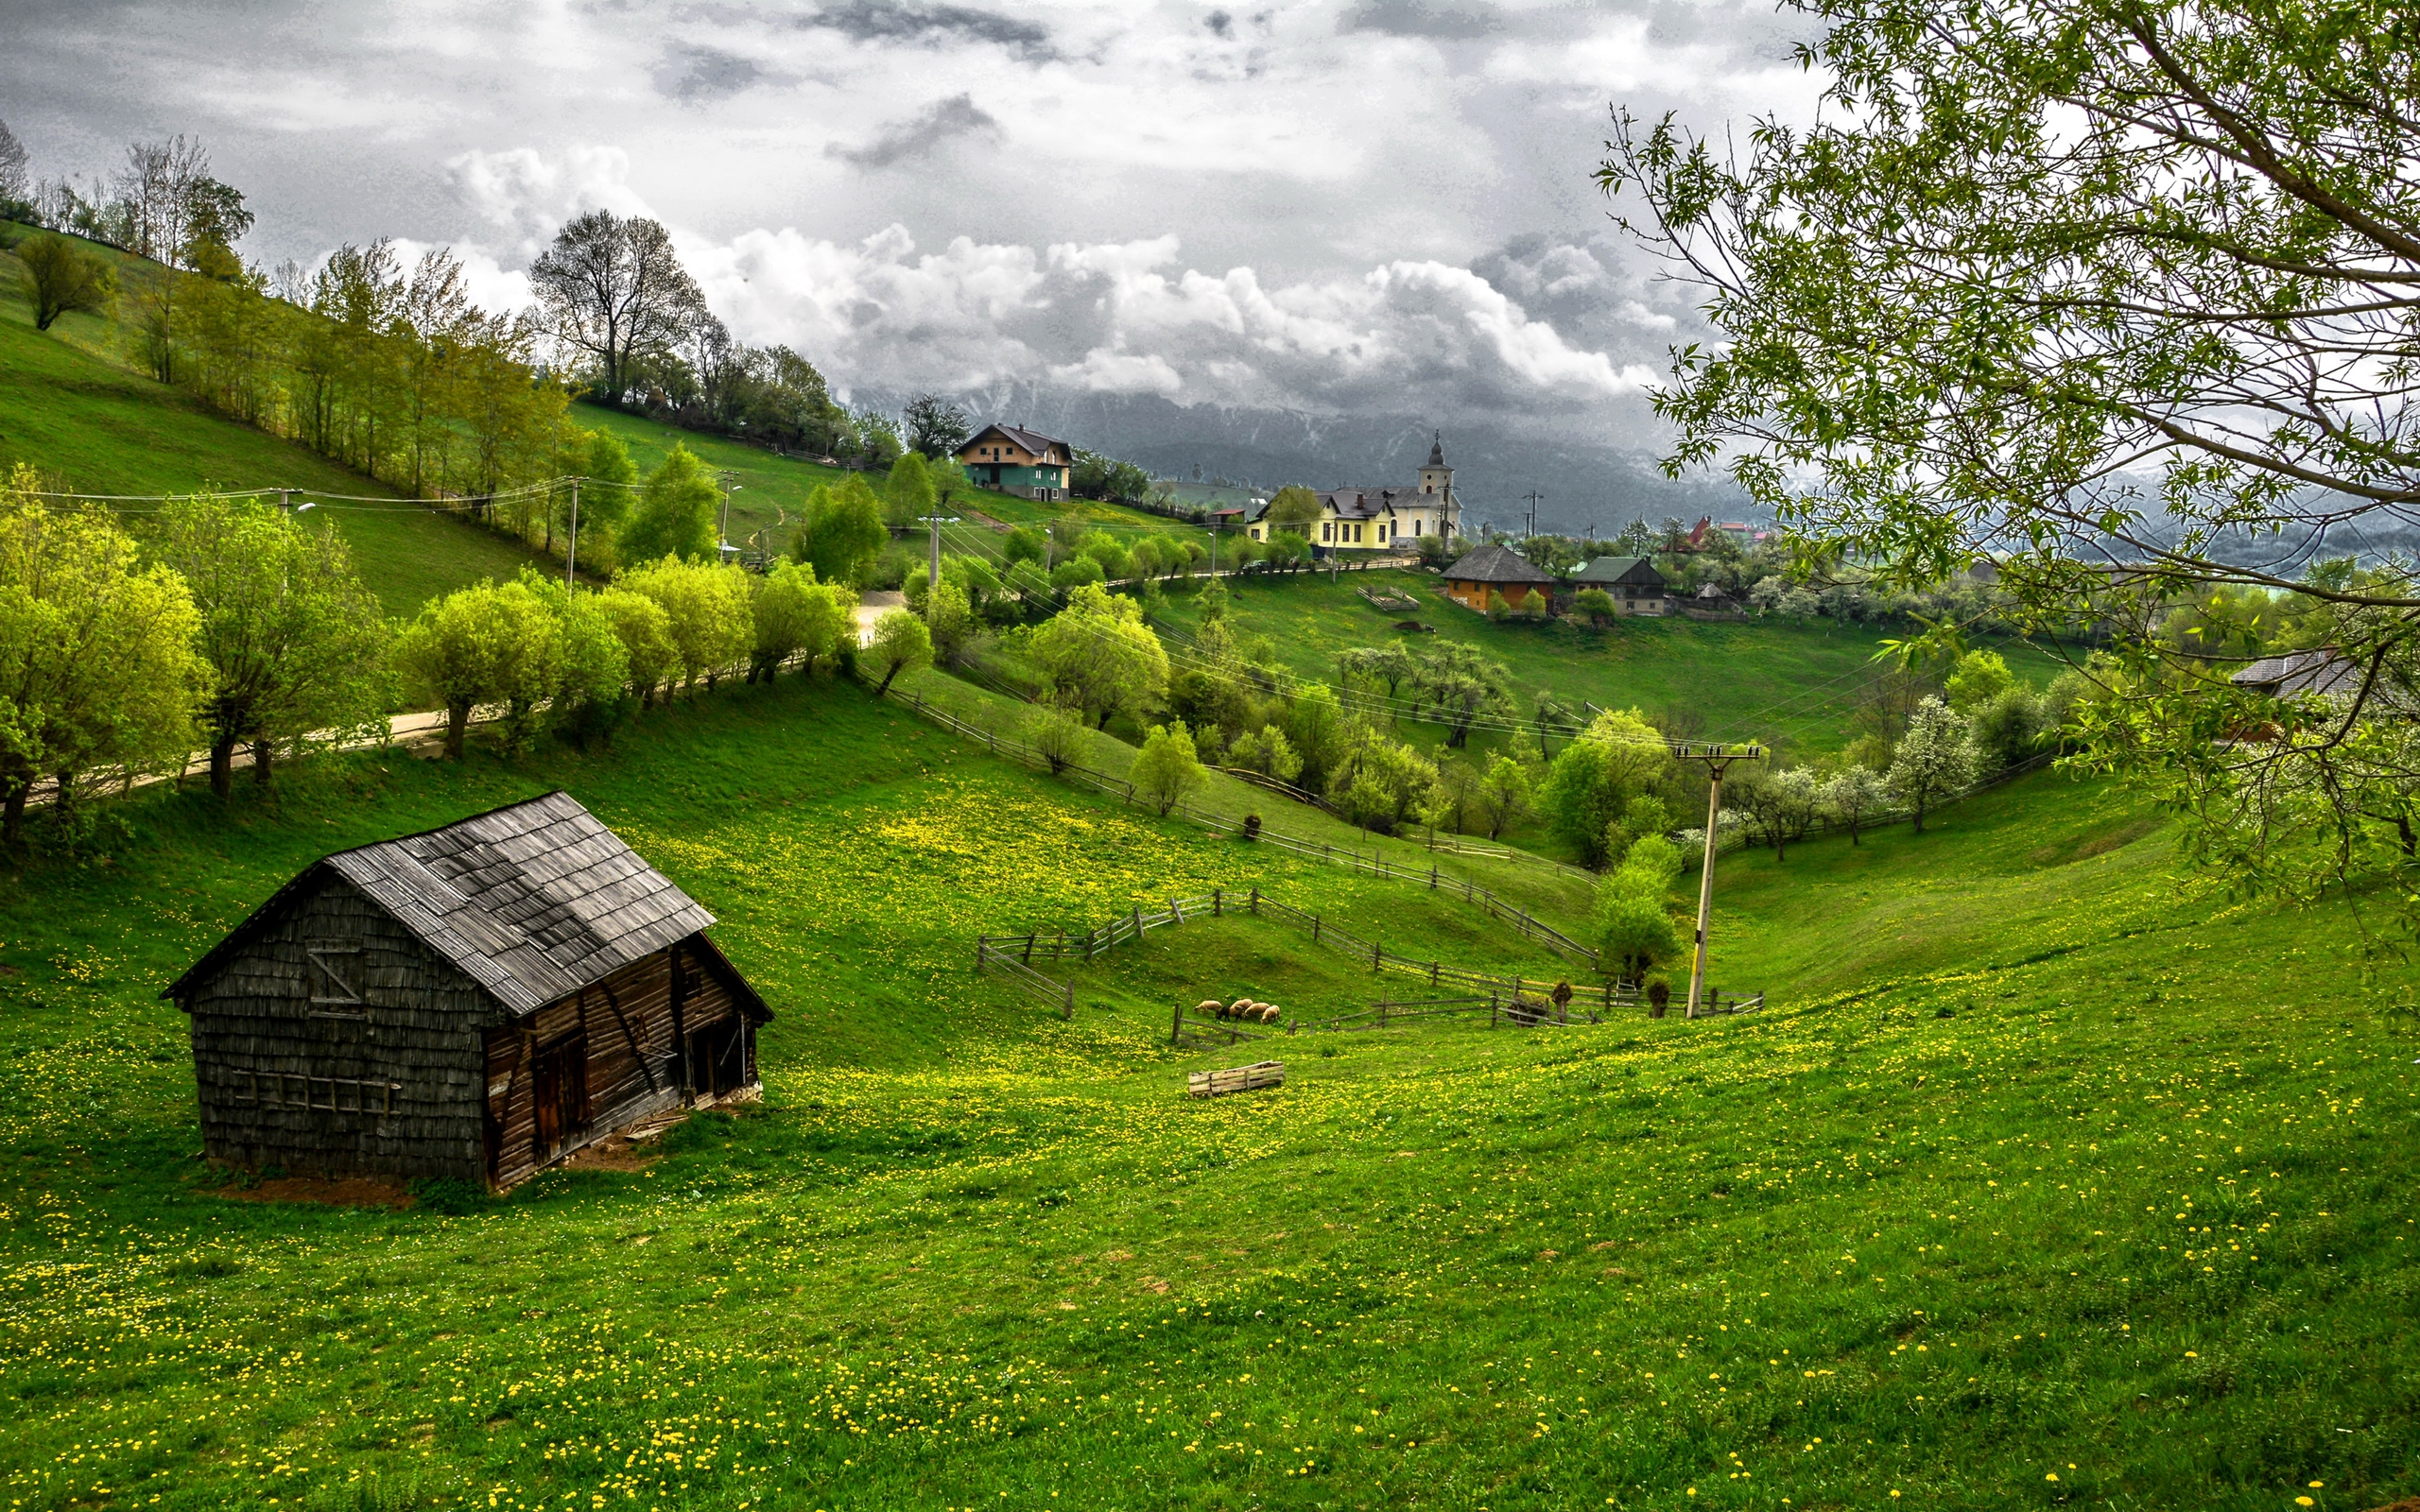 Fall Wallpaper For Android Tablet Romania Scenery Fields Transylvania Grass Nature 408787